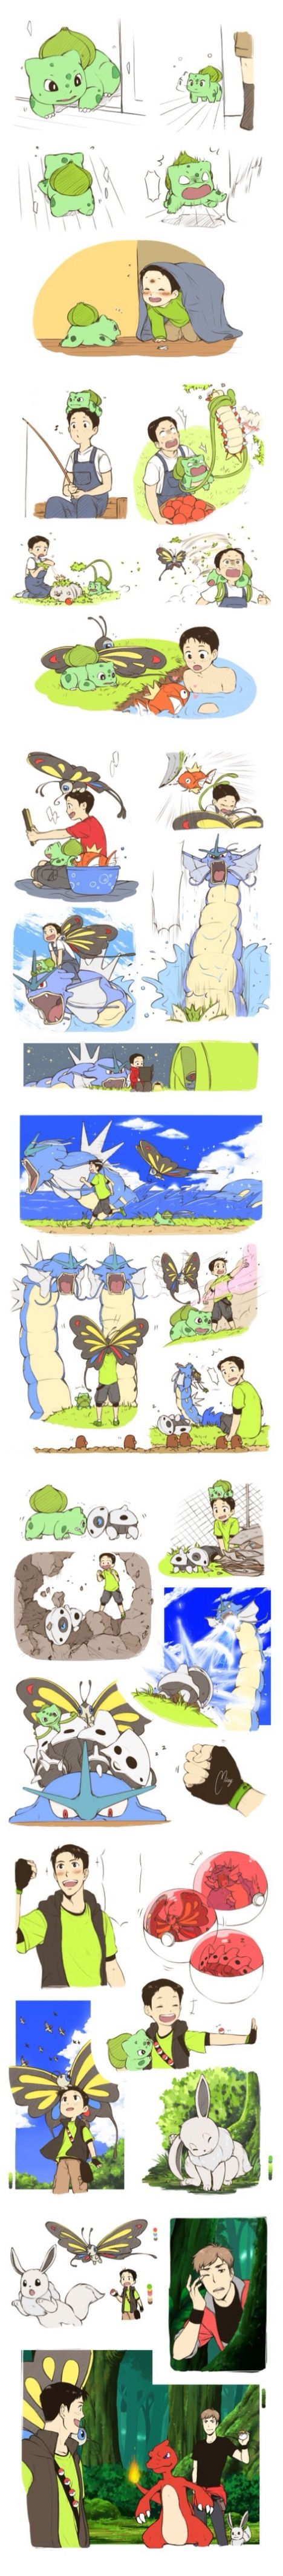 Attack on Titan / Pokémon ~~ Awwe! Marco and Jean are Pokémon trainers!